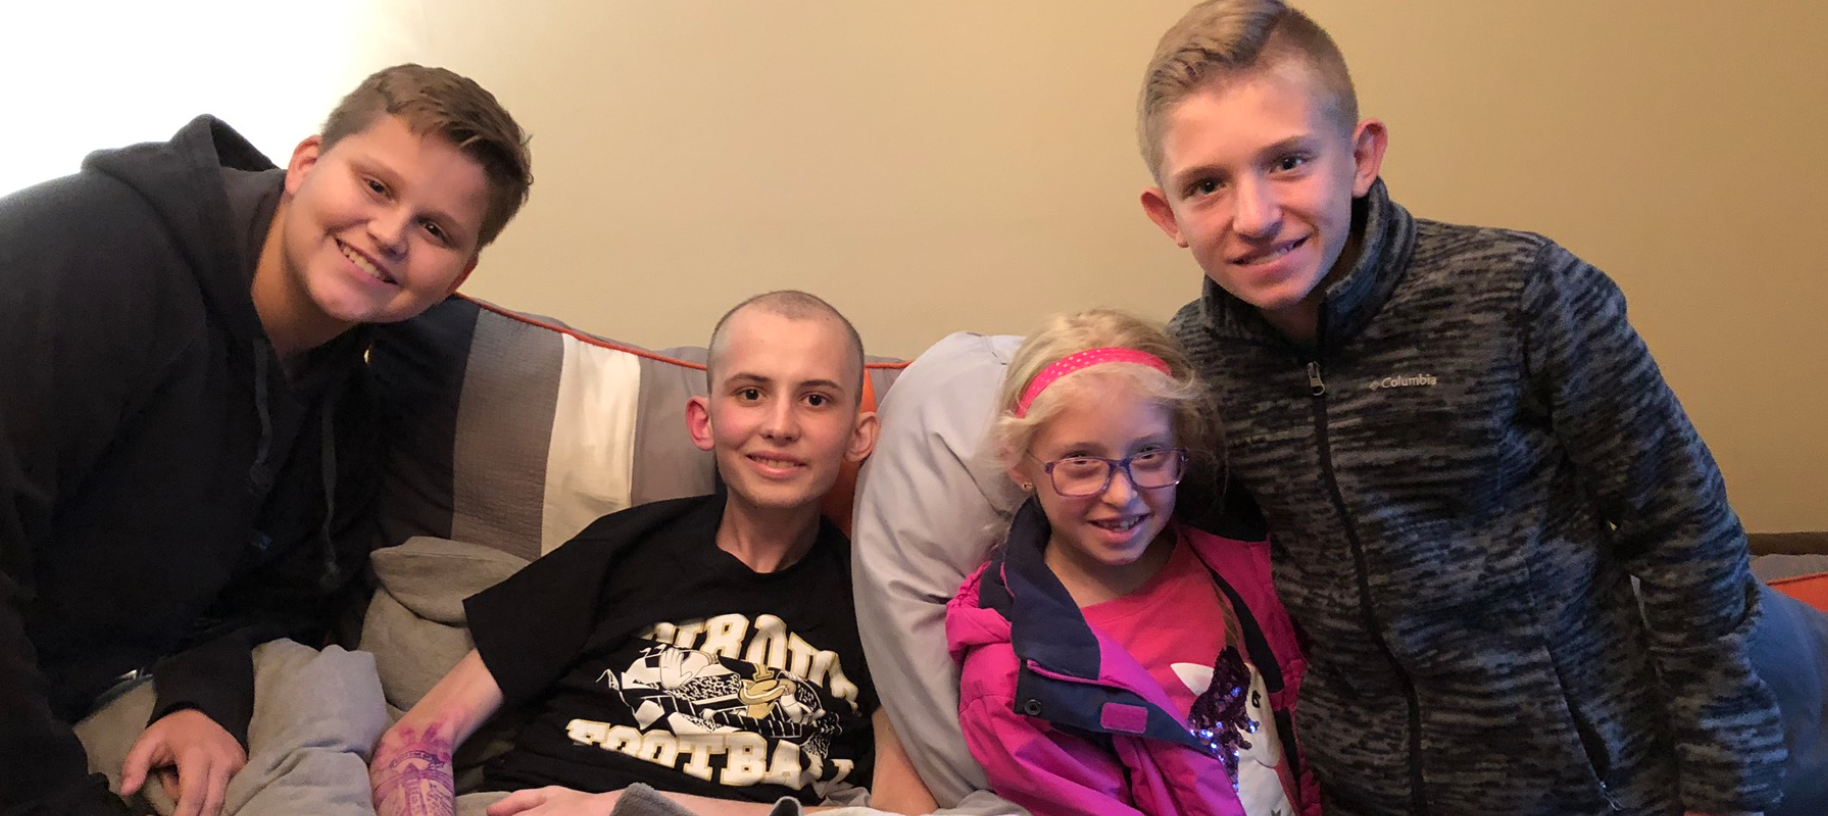 Ethan and Tyler welcomed the BDowd kids and tons of others into their home